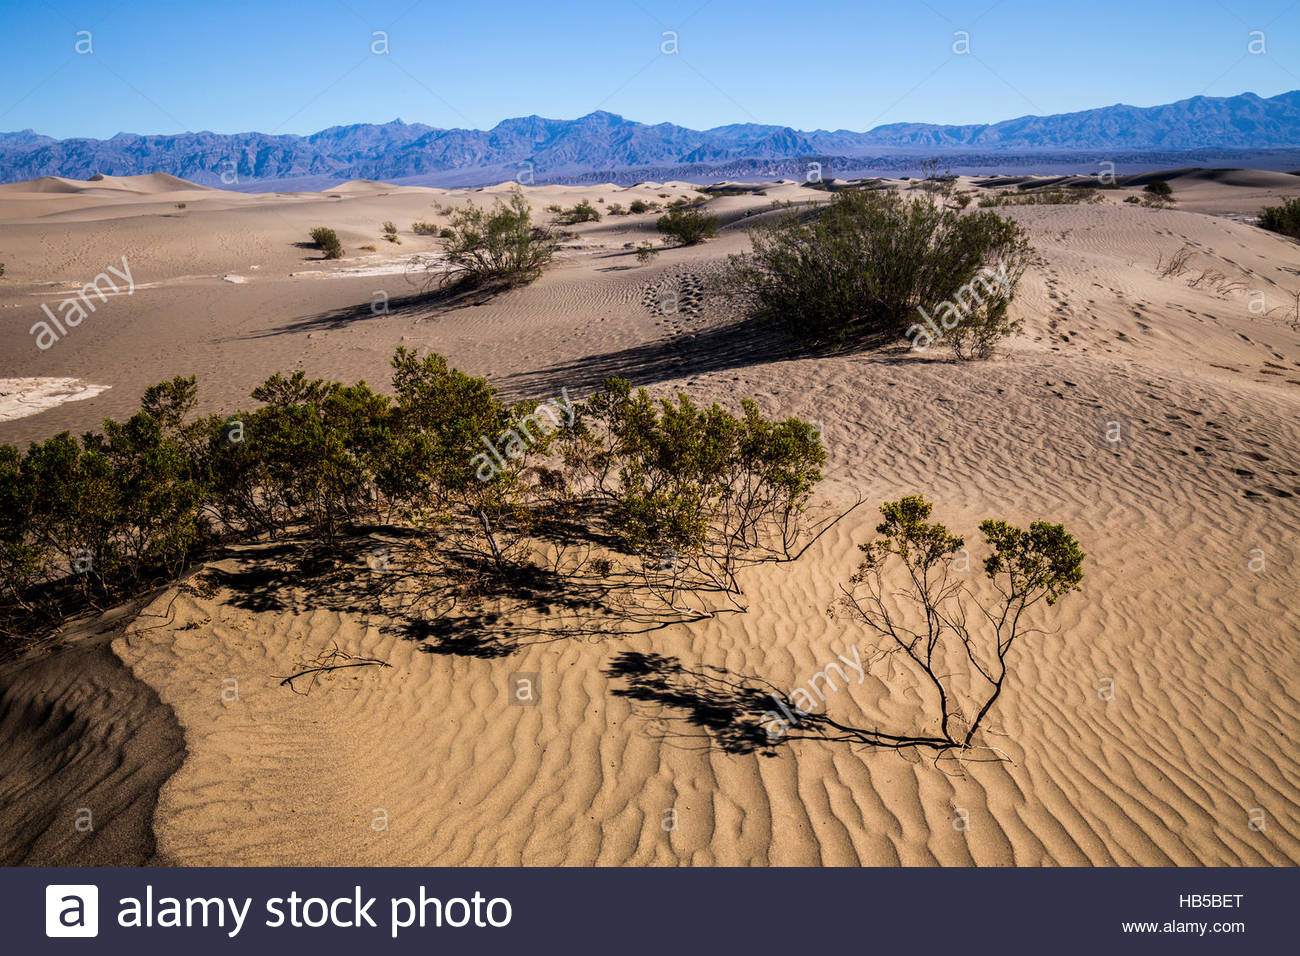 Mesquite Flat Sand Dunes, Stovepipe Wells,Death Valley,California,Unites States of America - Stock Image